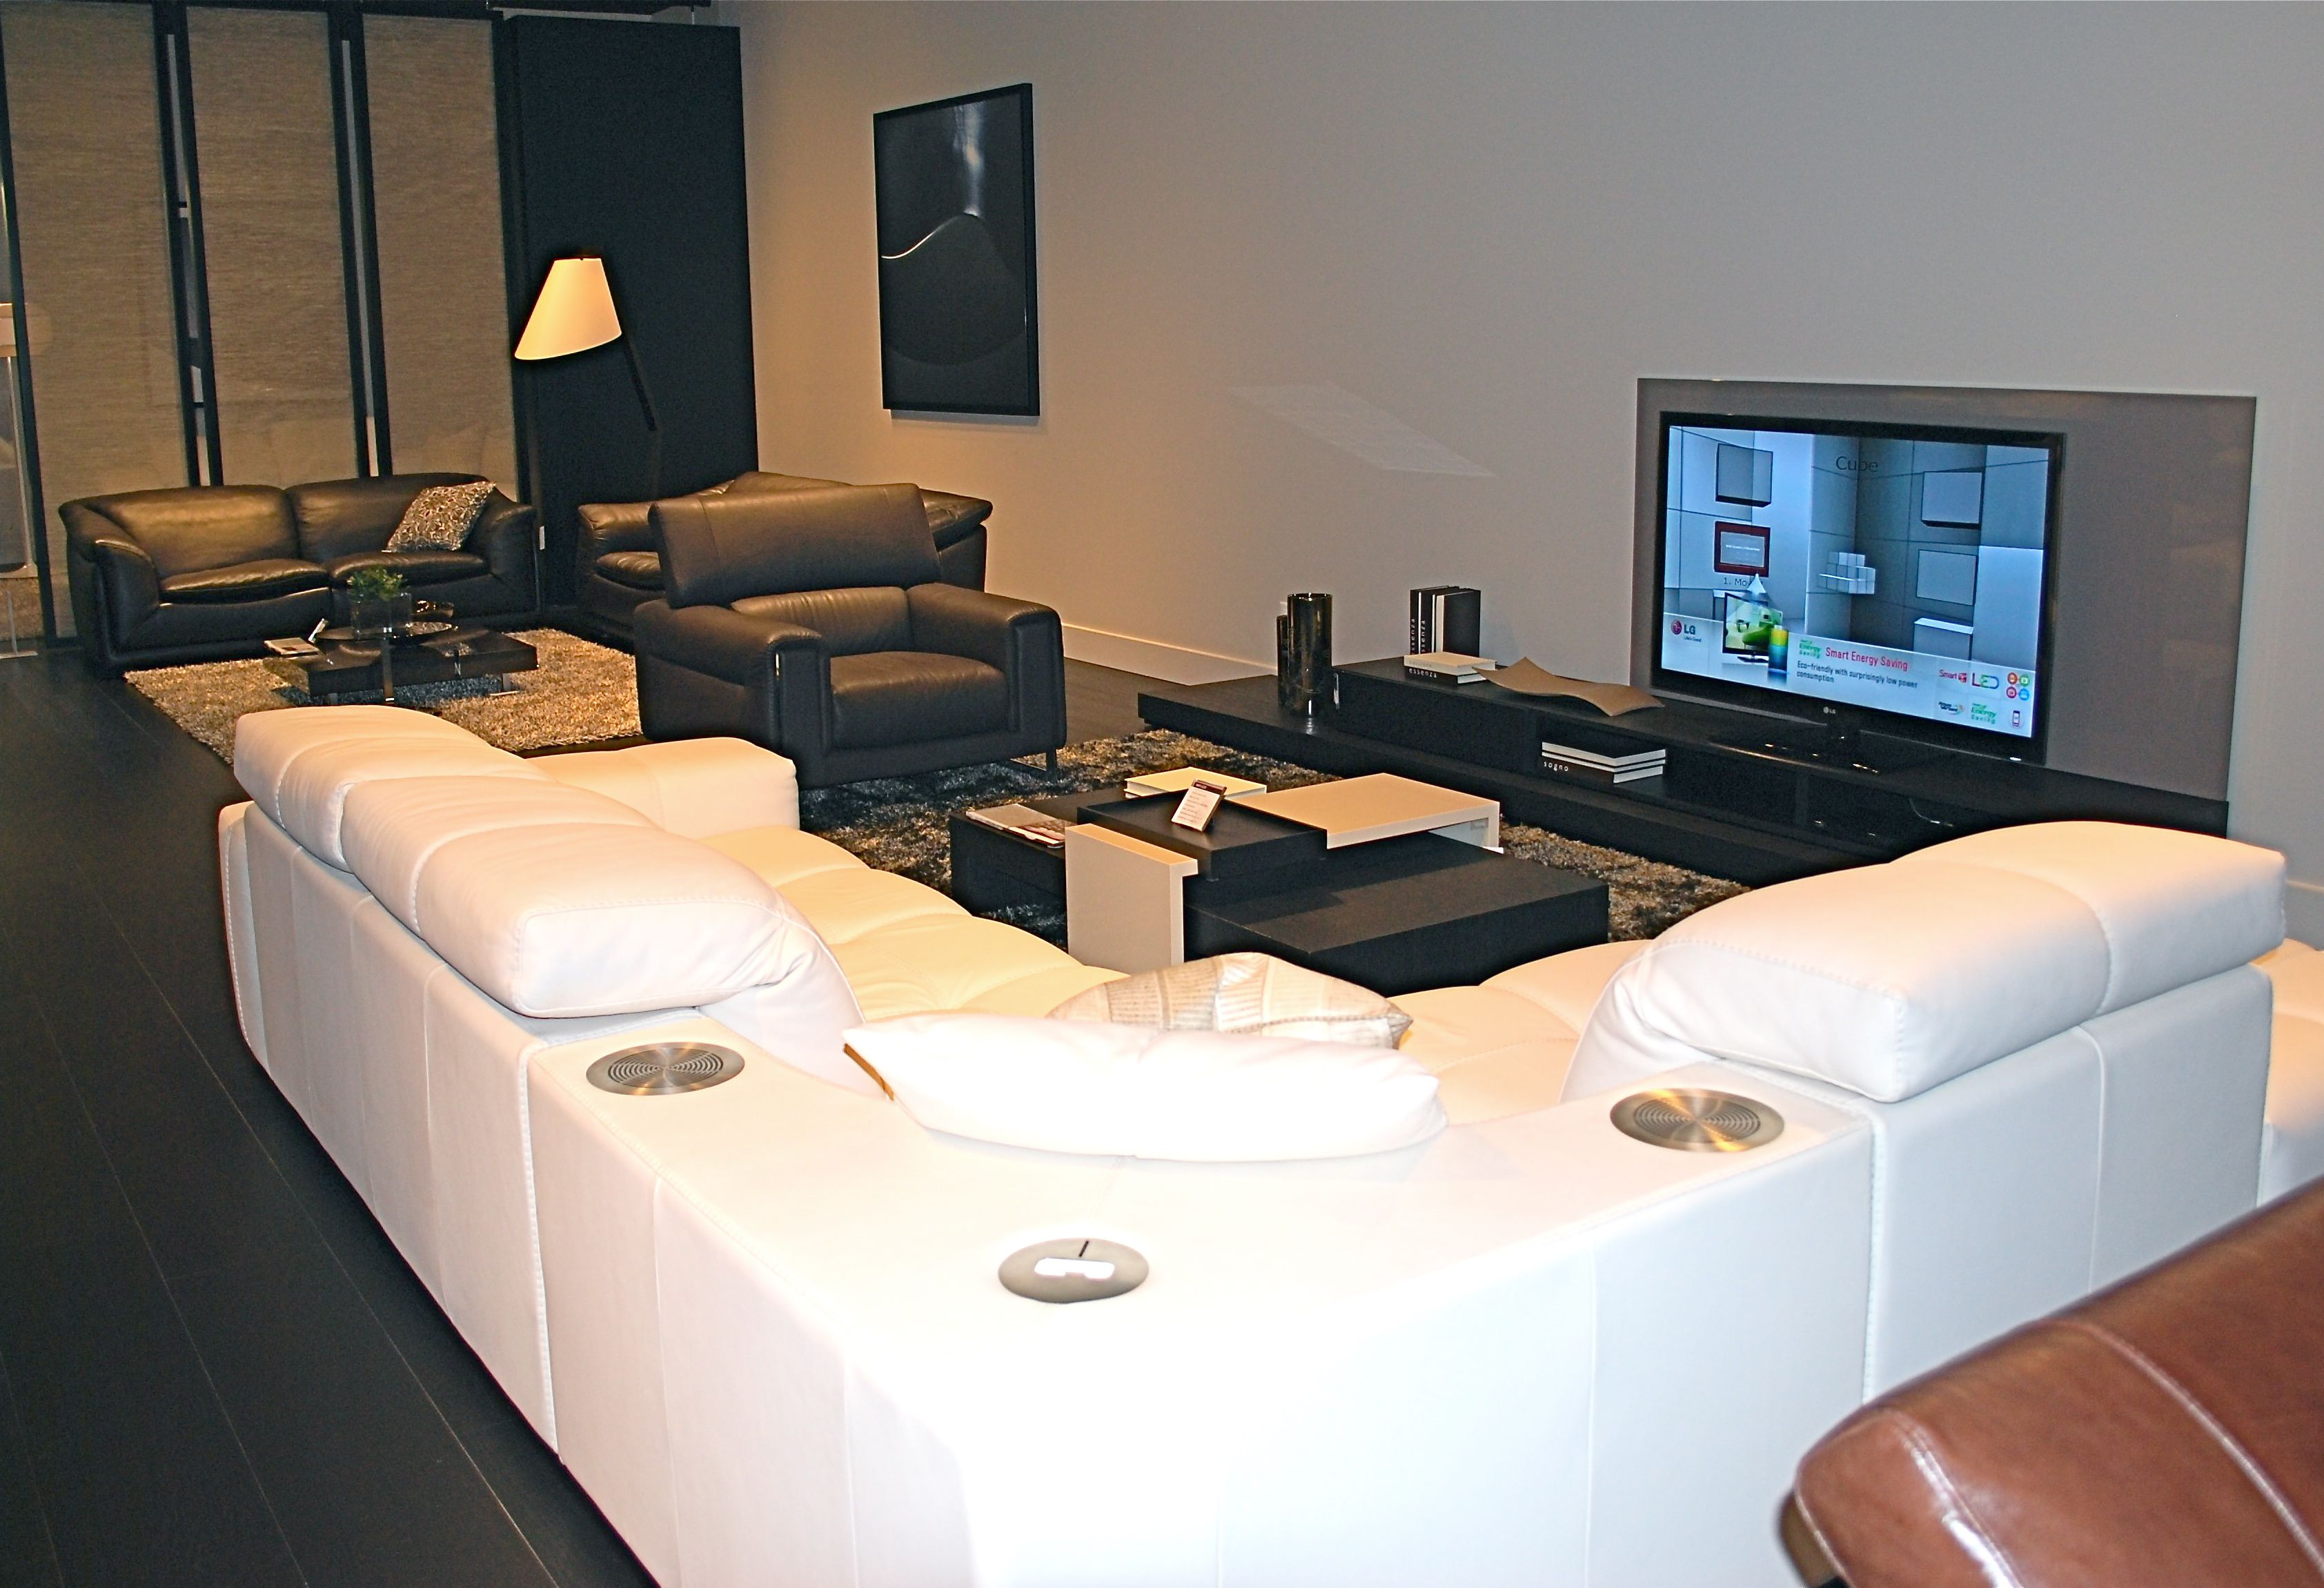 The Surround Sectional is one has a docking station and